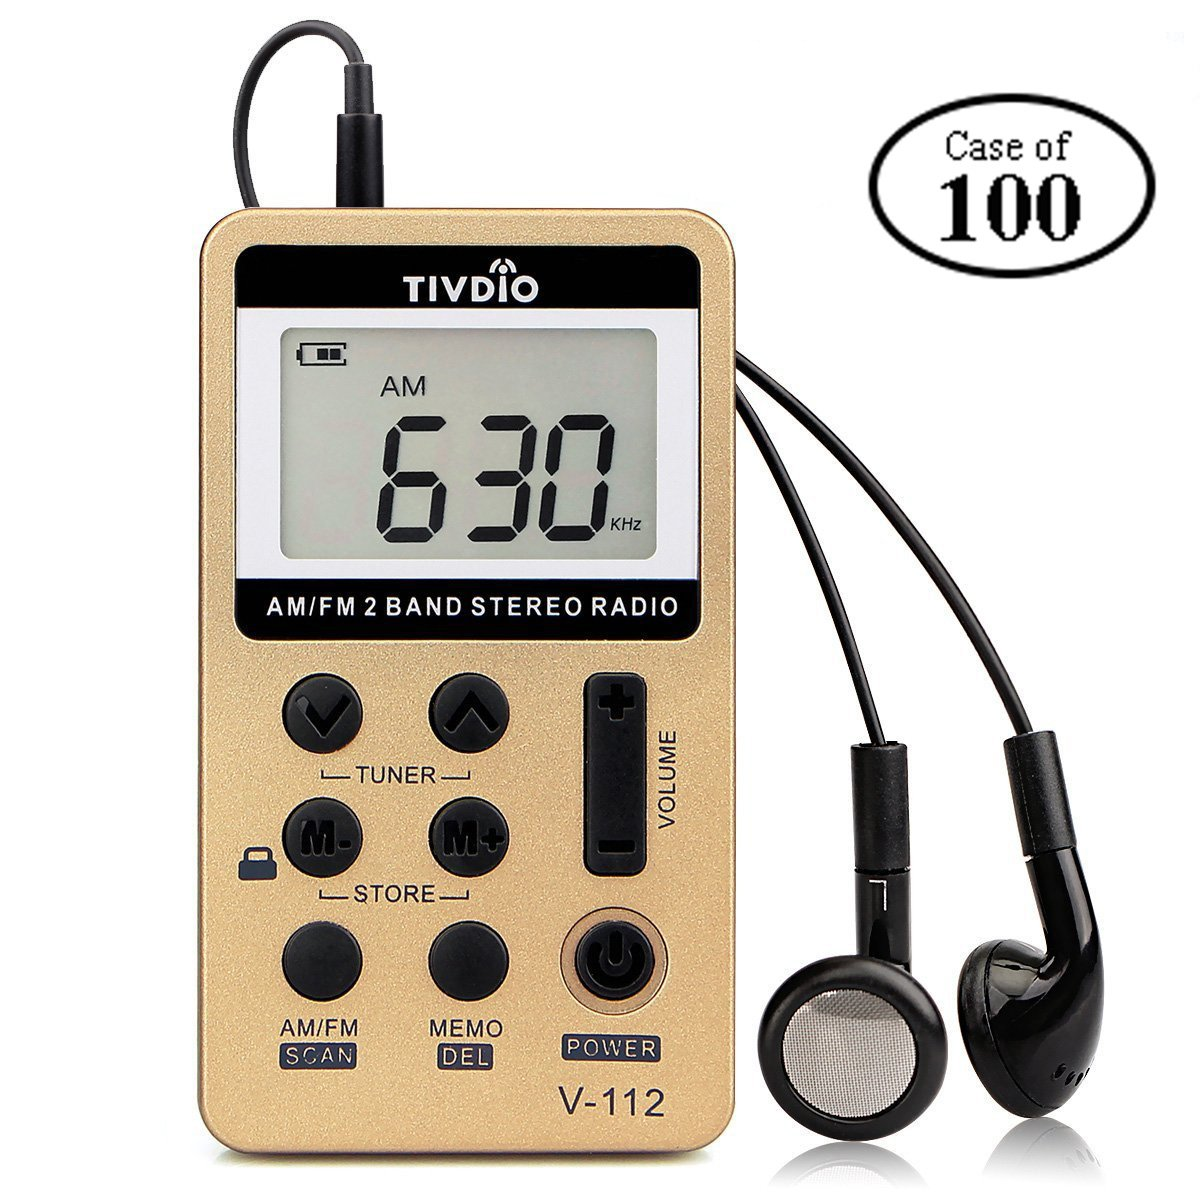 Case of 100,TIVDIO V-112 Portable AM FM Stereo Radio with Earphones Pocket Mini Digital Tuning Rechargeable Battery LCD Display for Walk(Gold)